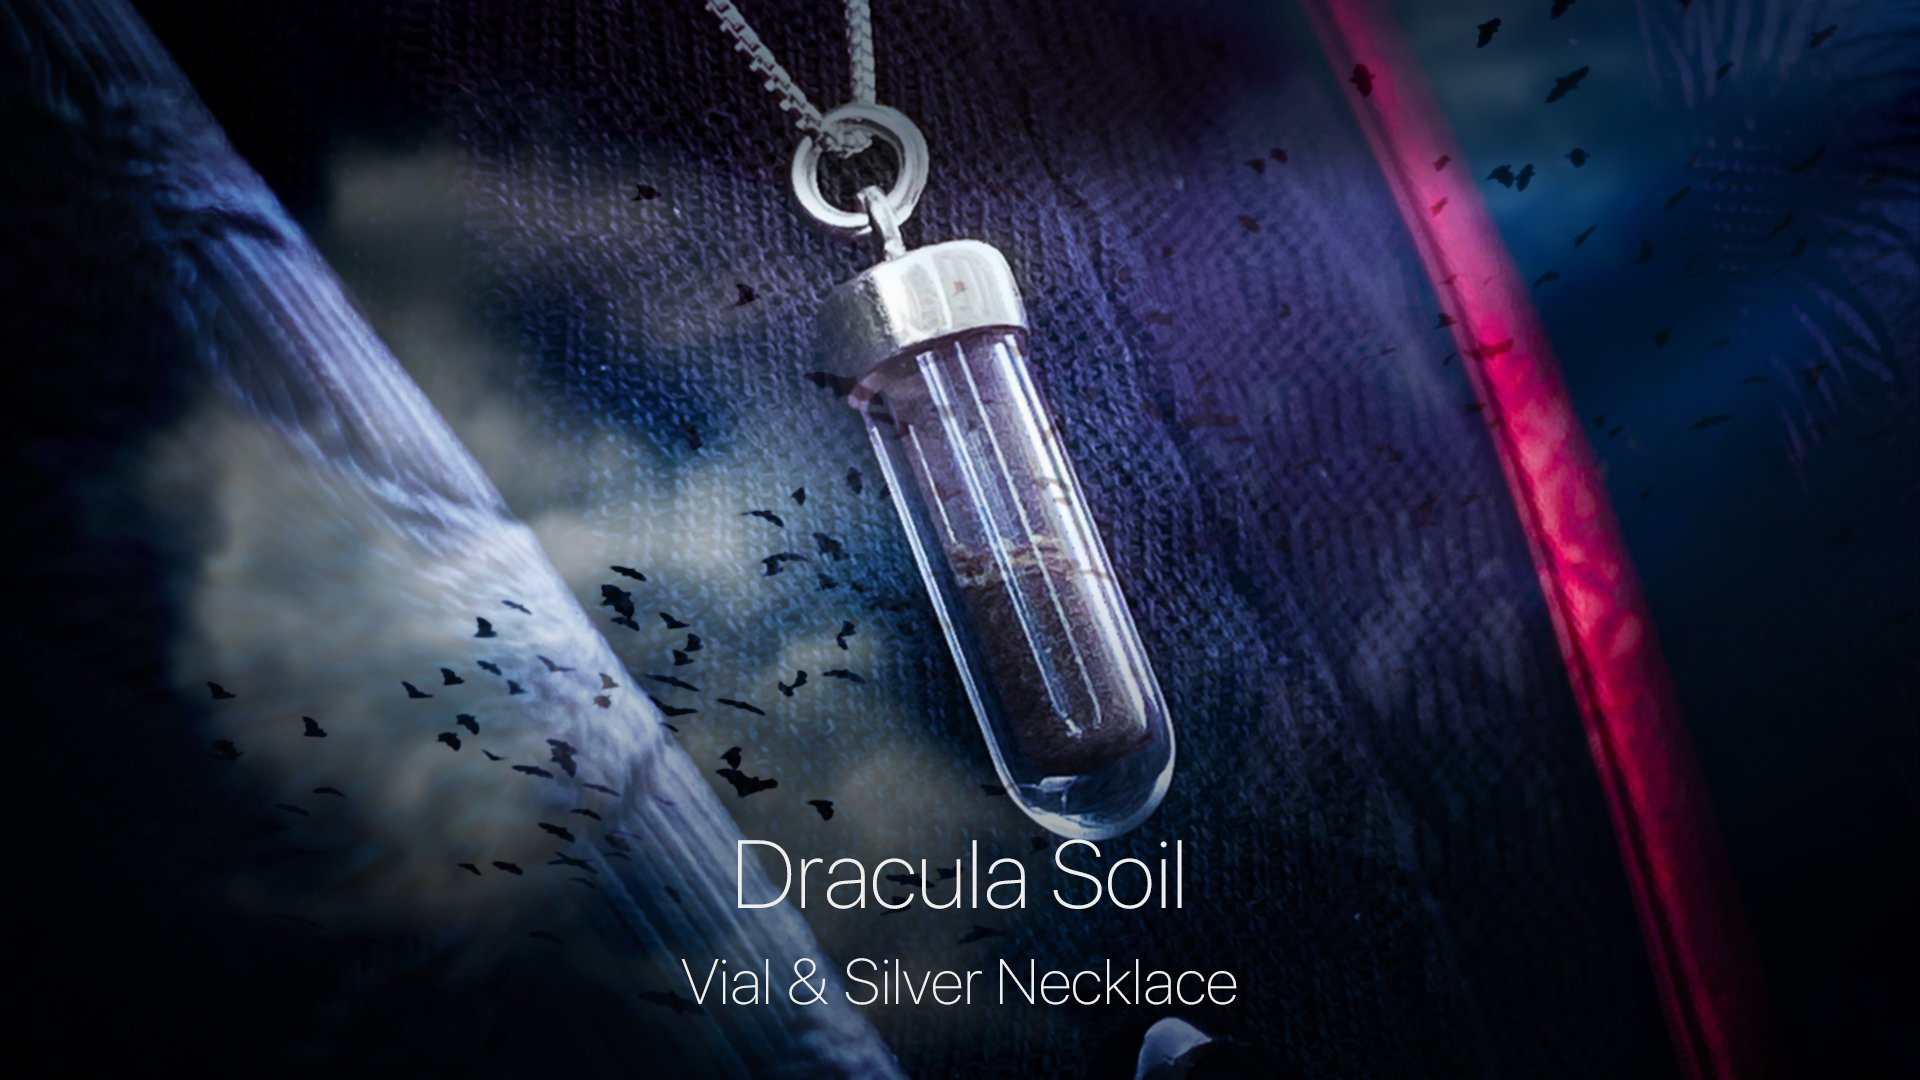 Dracula Soil Vial and Silver Necklace